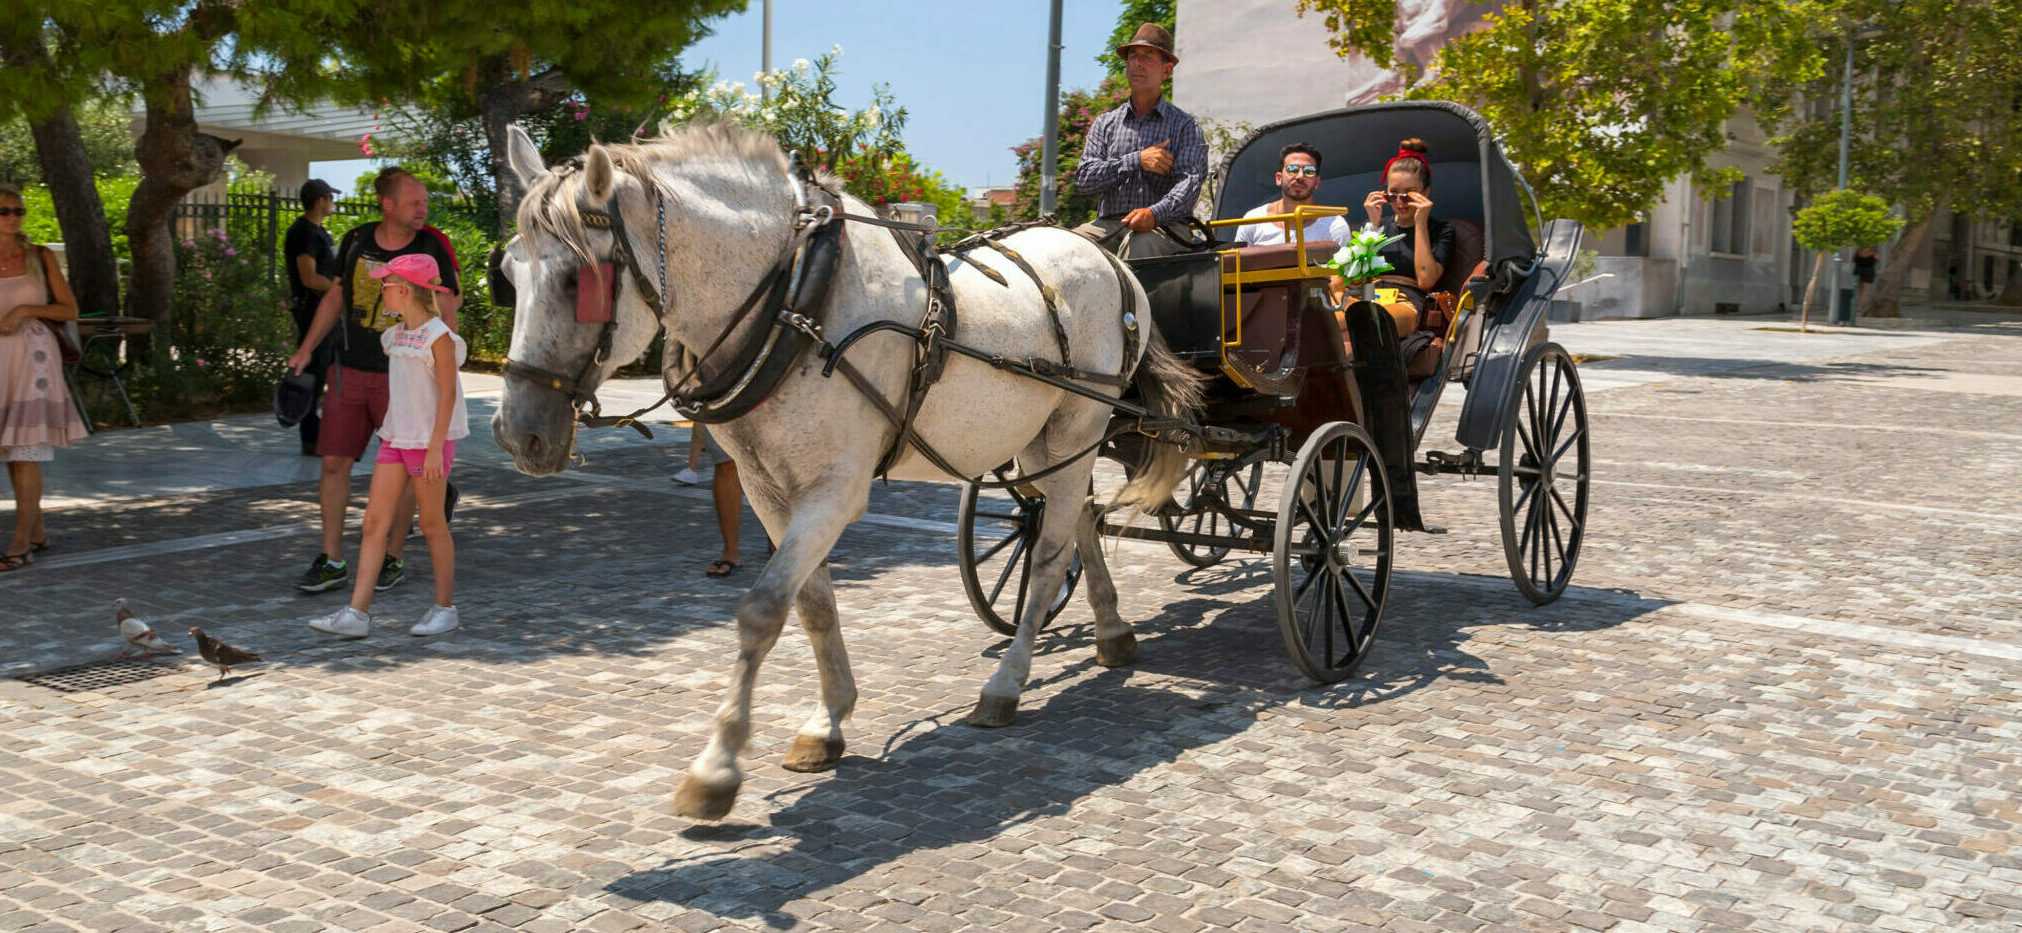 Back in time with Athens' horse-drawn trams